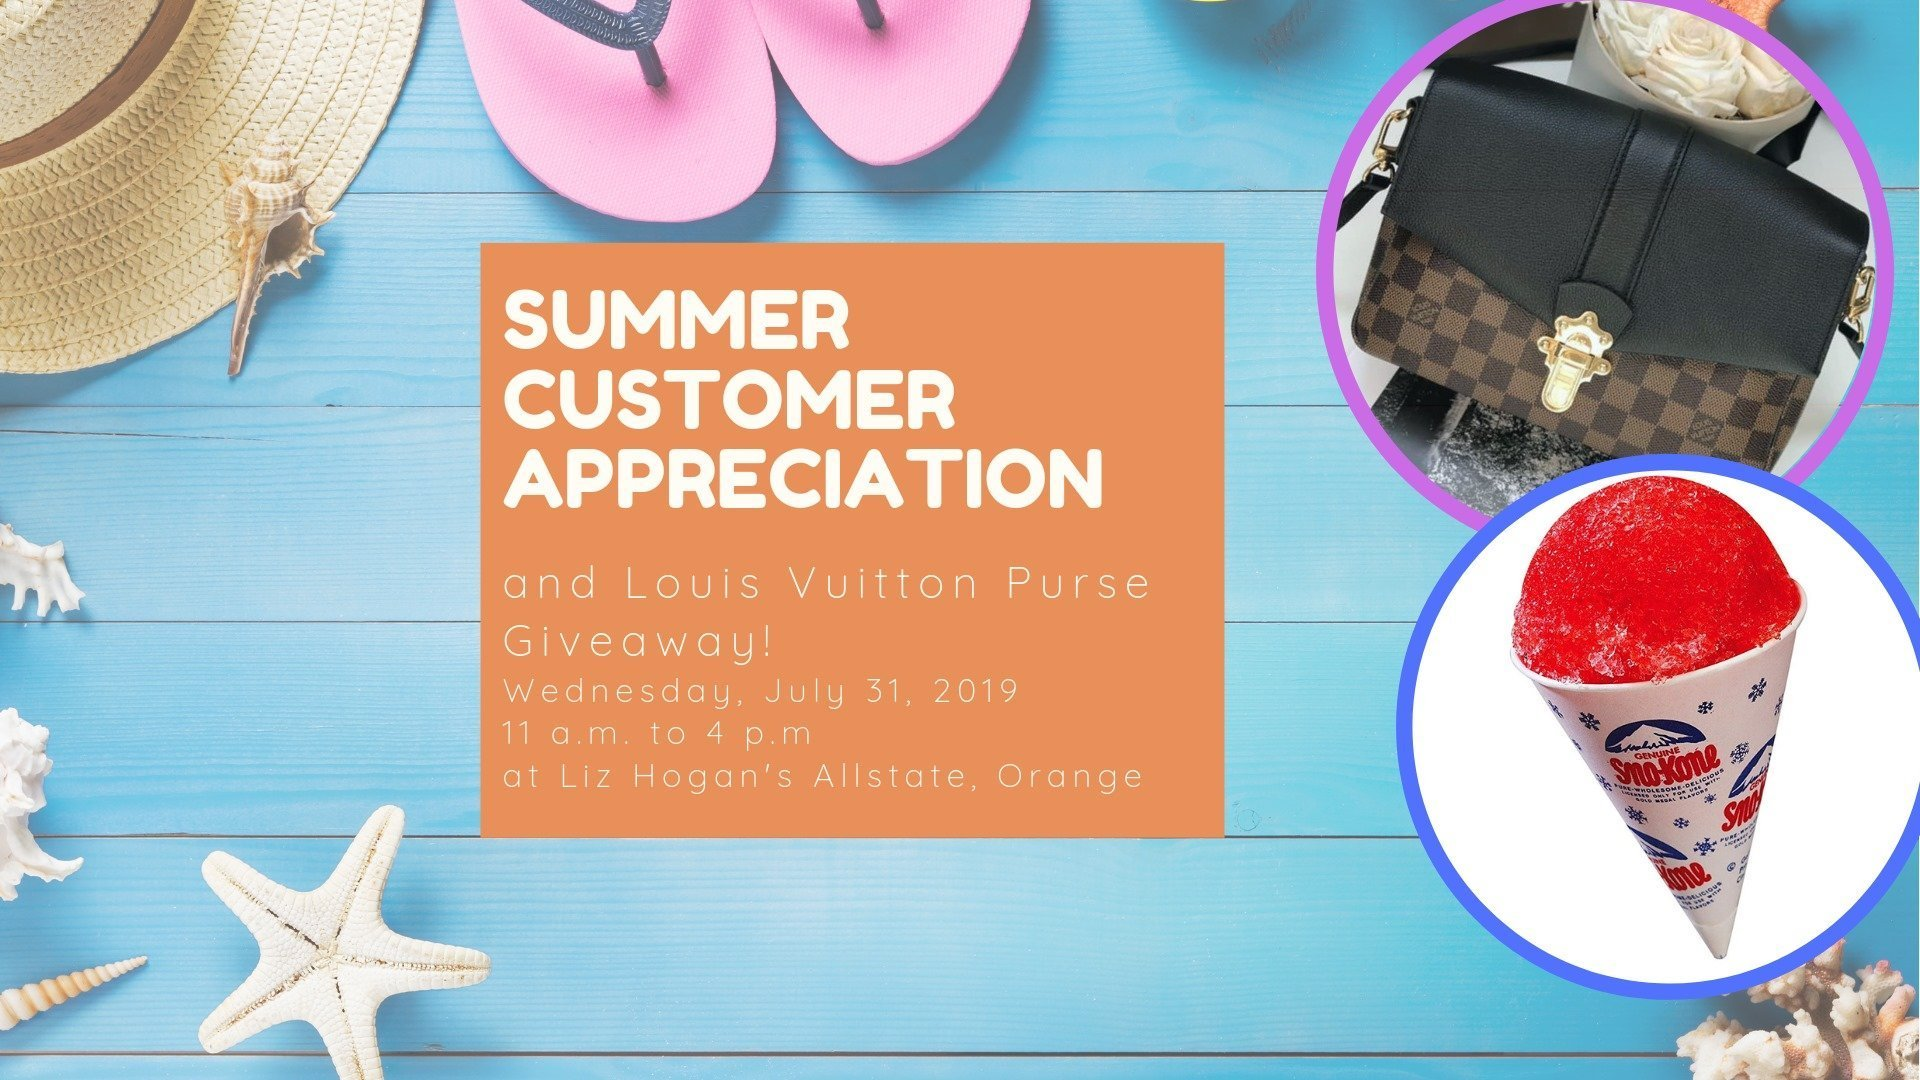 West Point Plaza Shops Holding Customer Appreciation Event